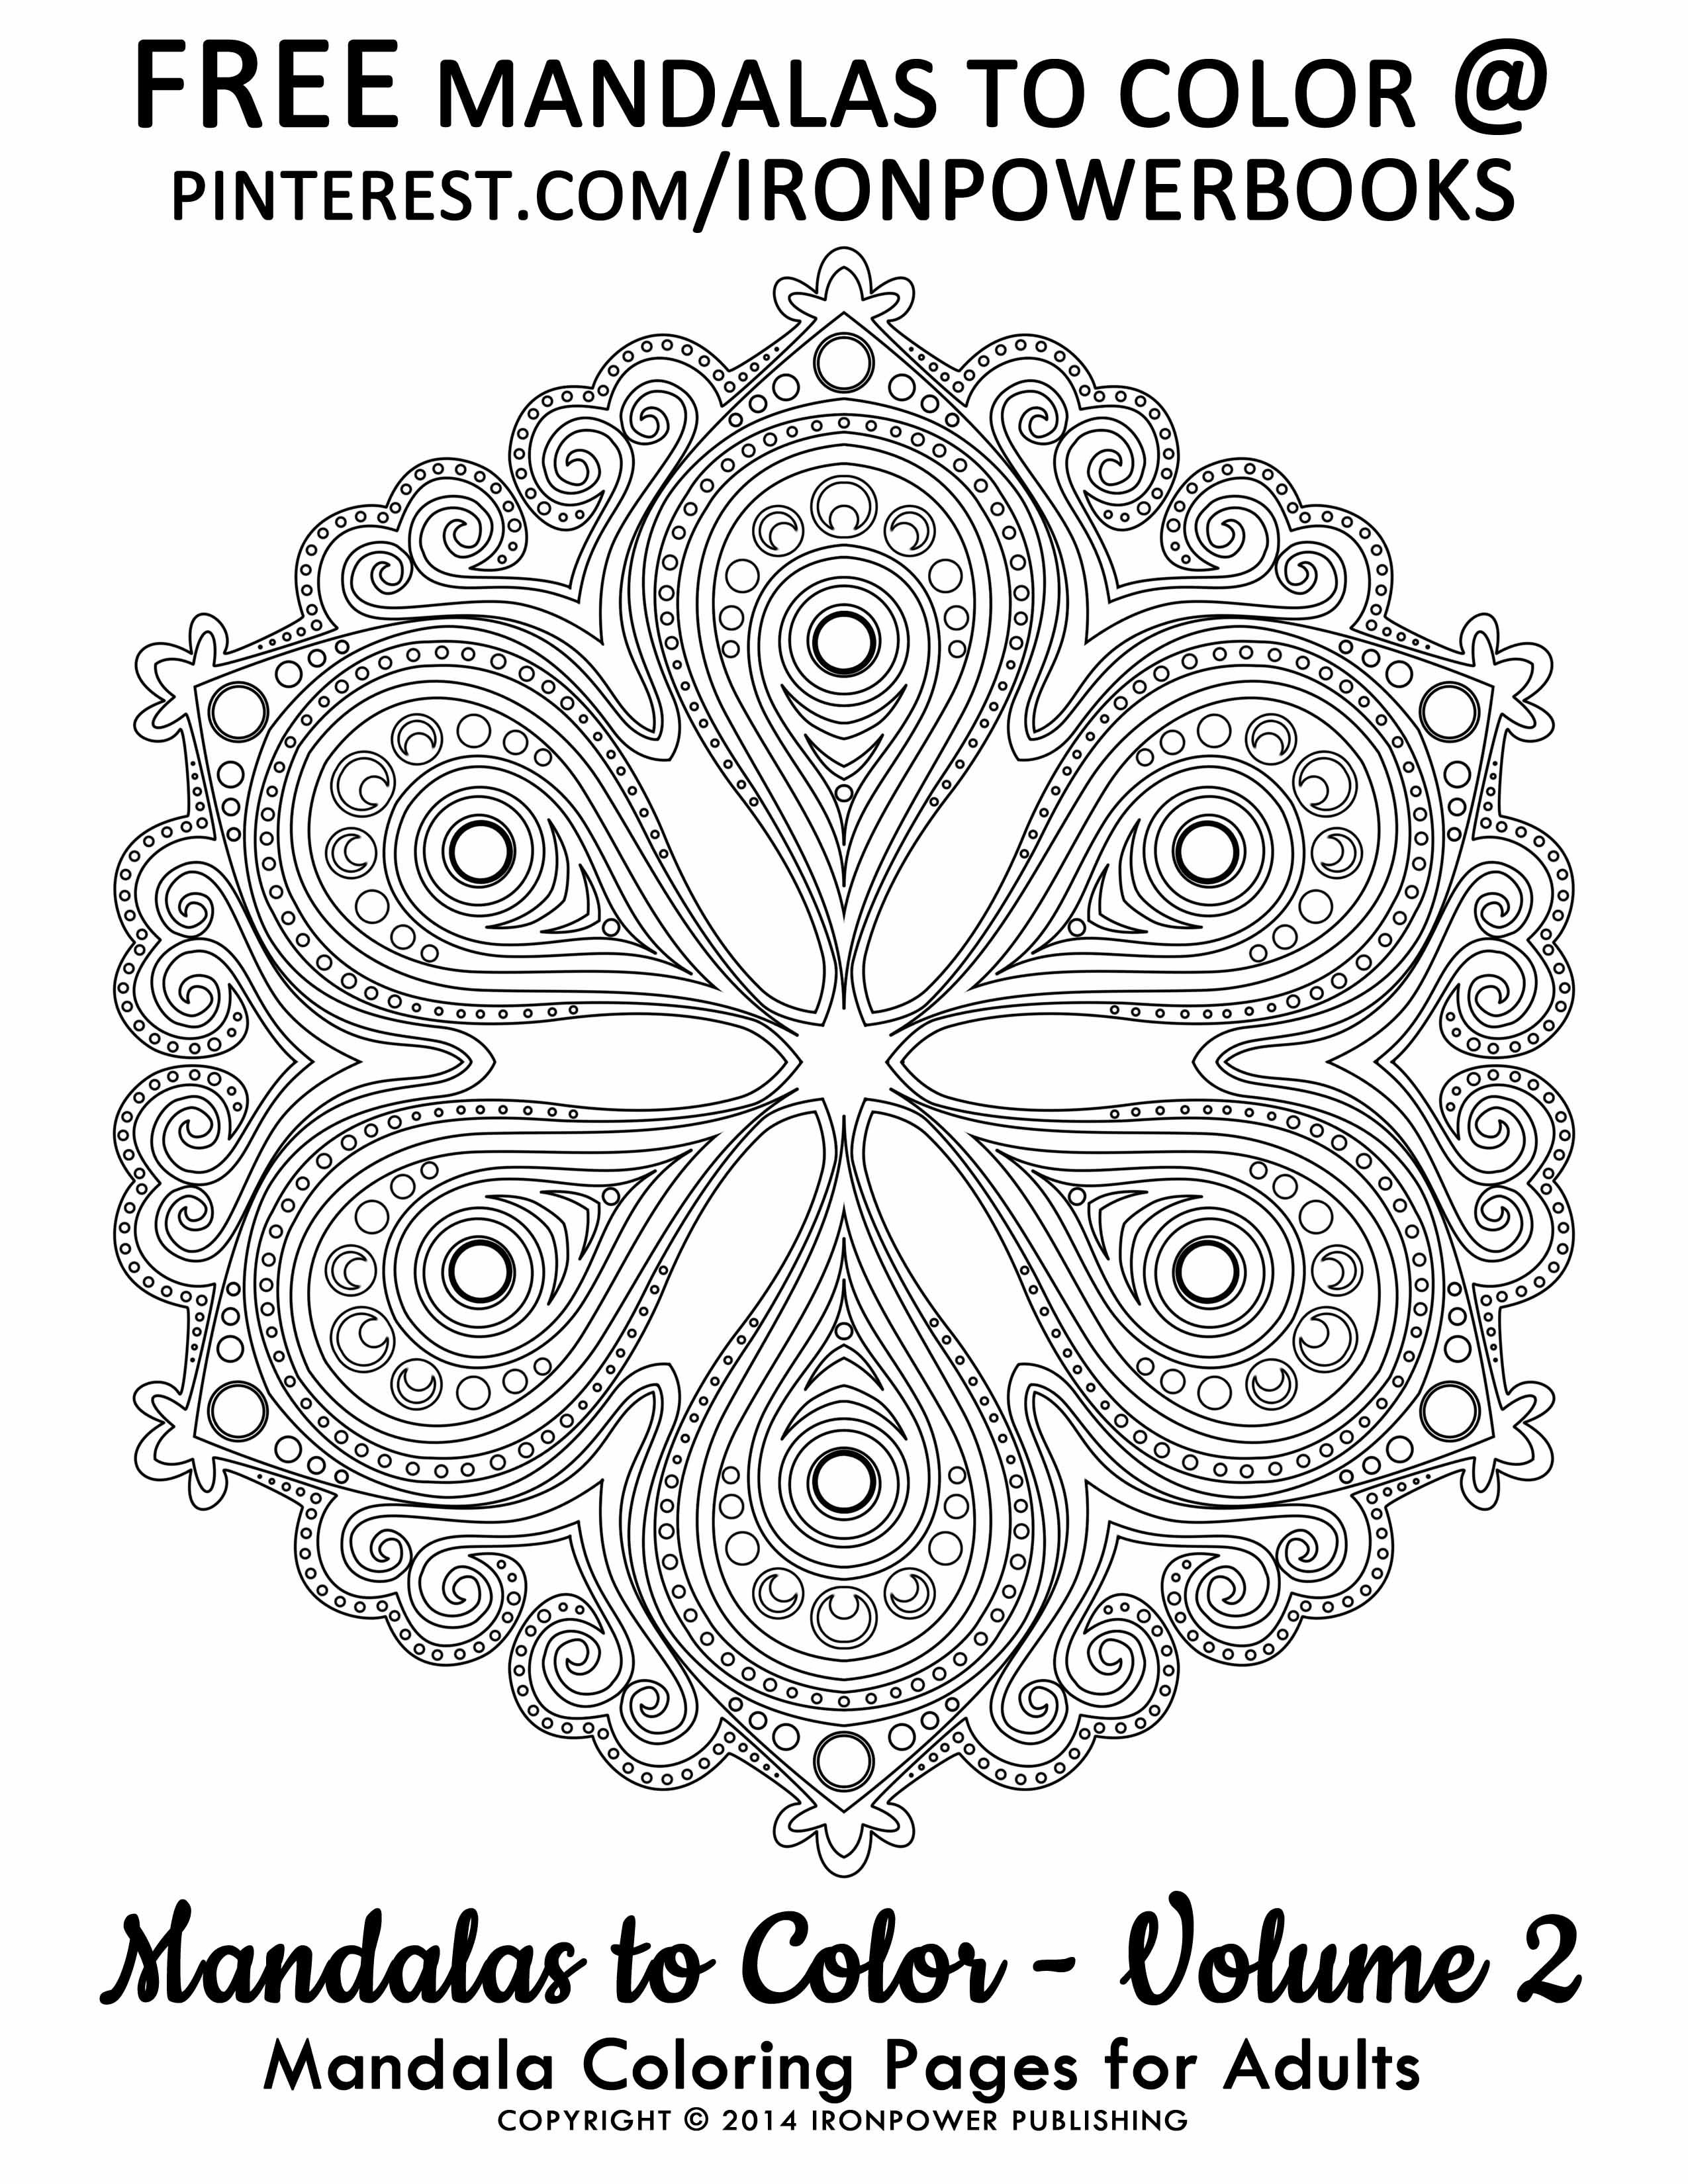 Hello there cathymalchiodi this is a FREE Mandala Coloring Page